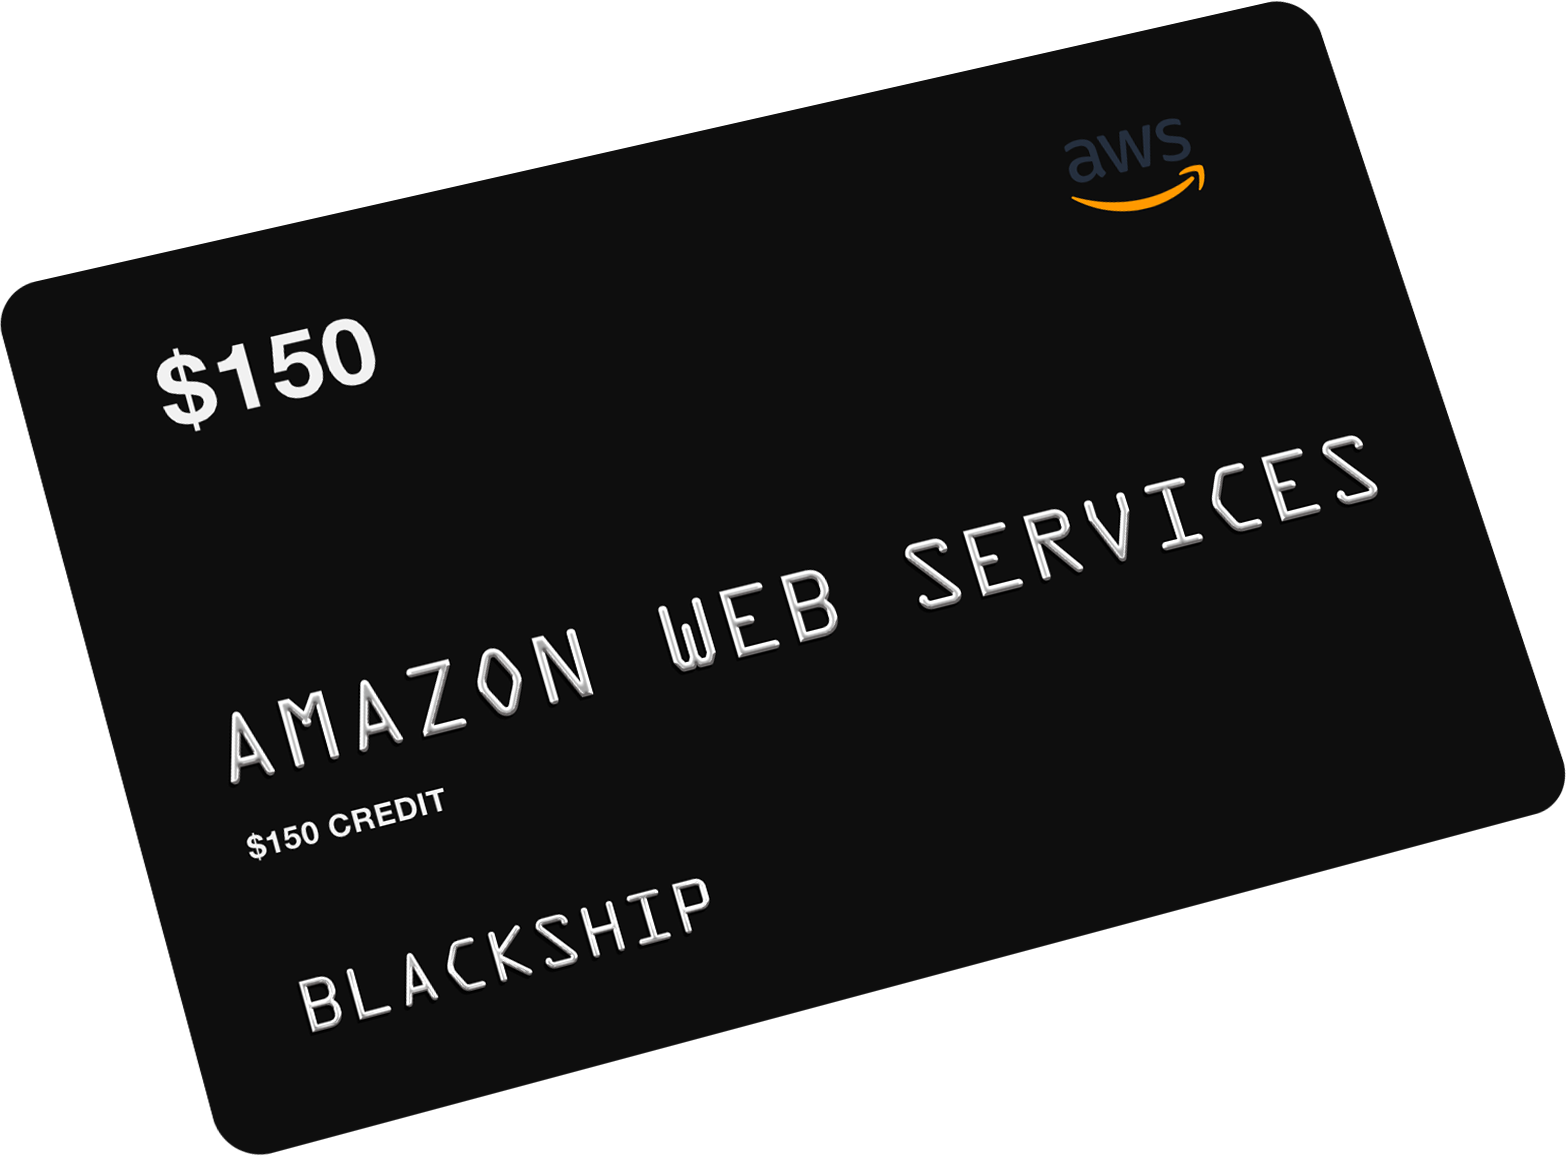 $150 Amazon Web Services (AWS) Credit